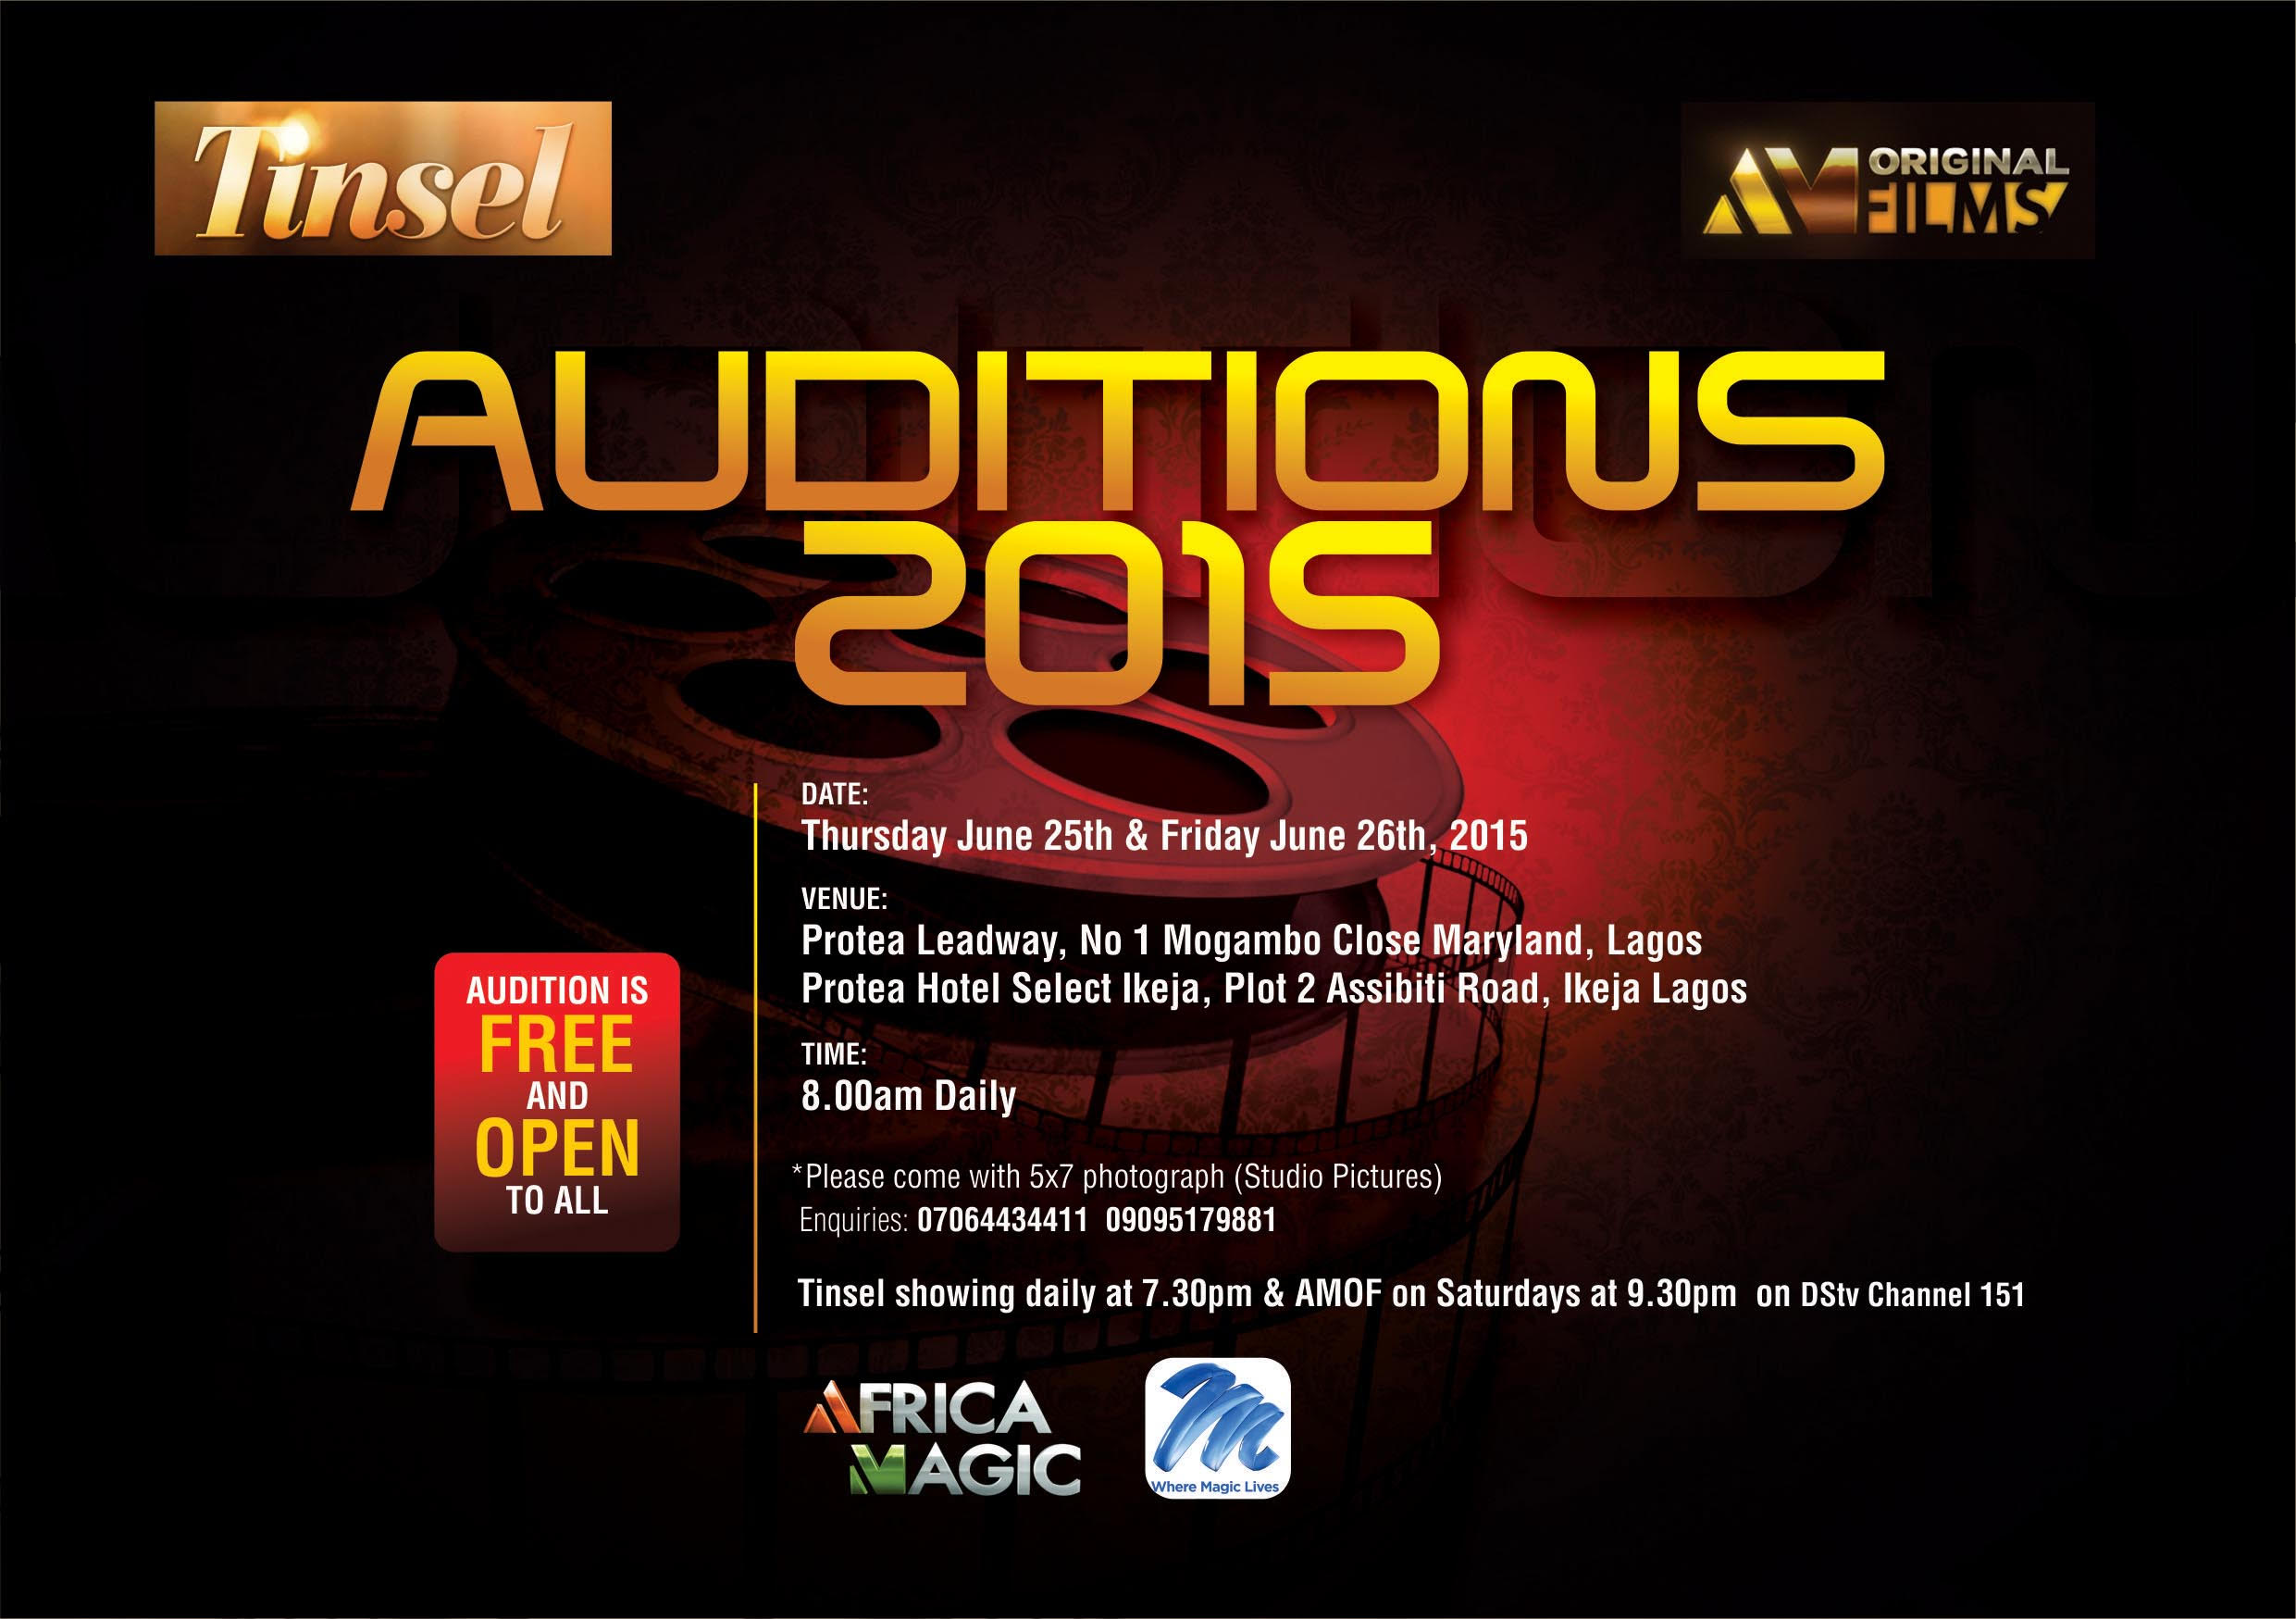 Tinsel Audition